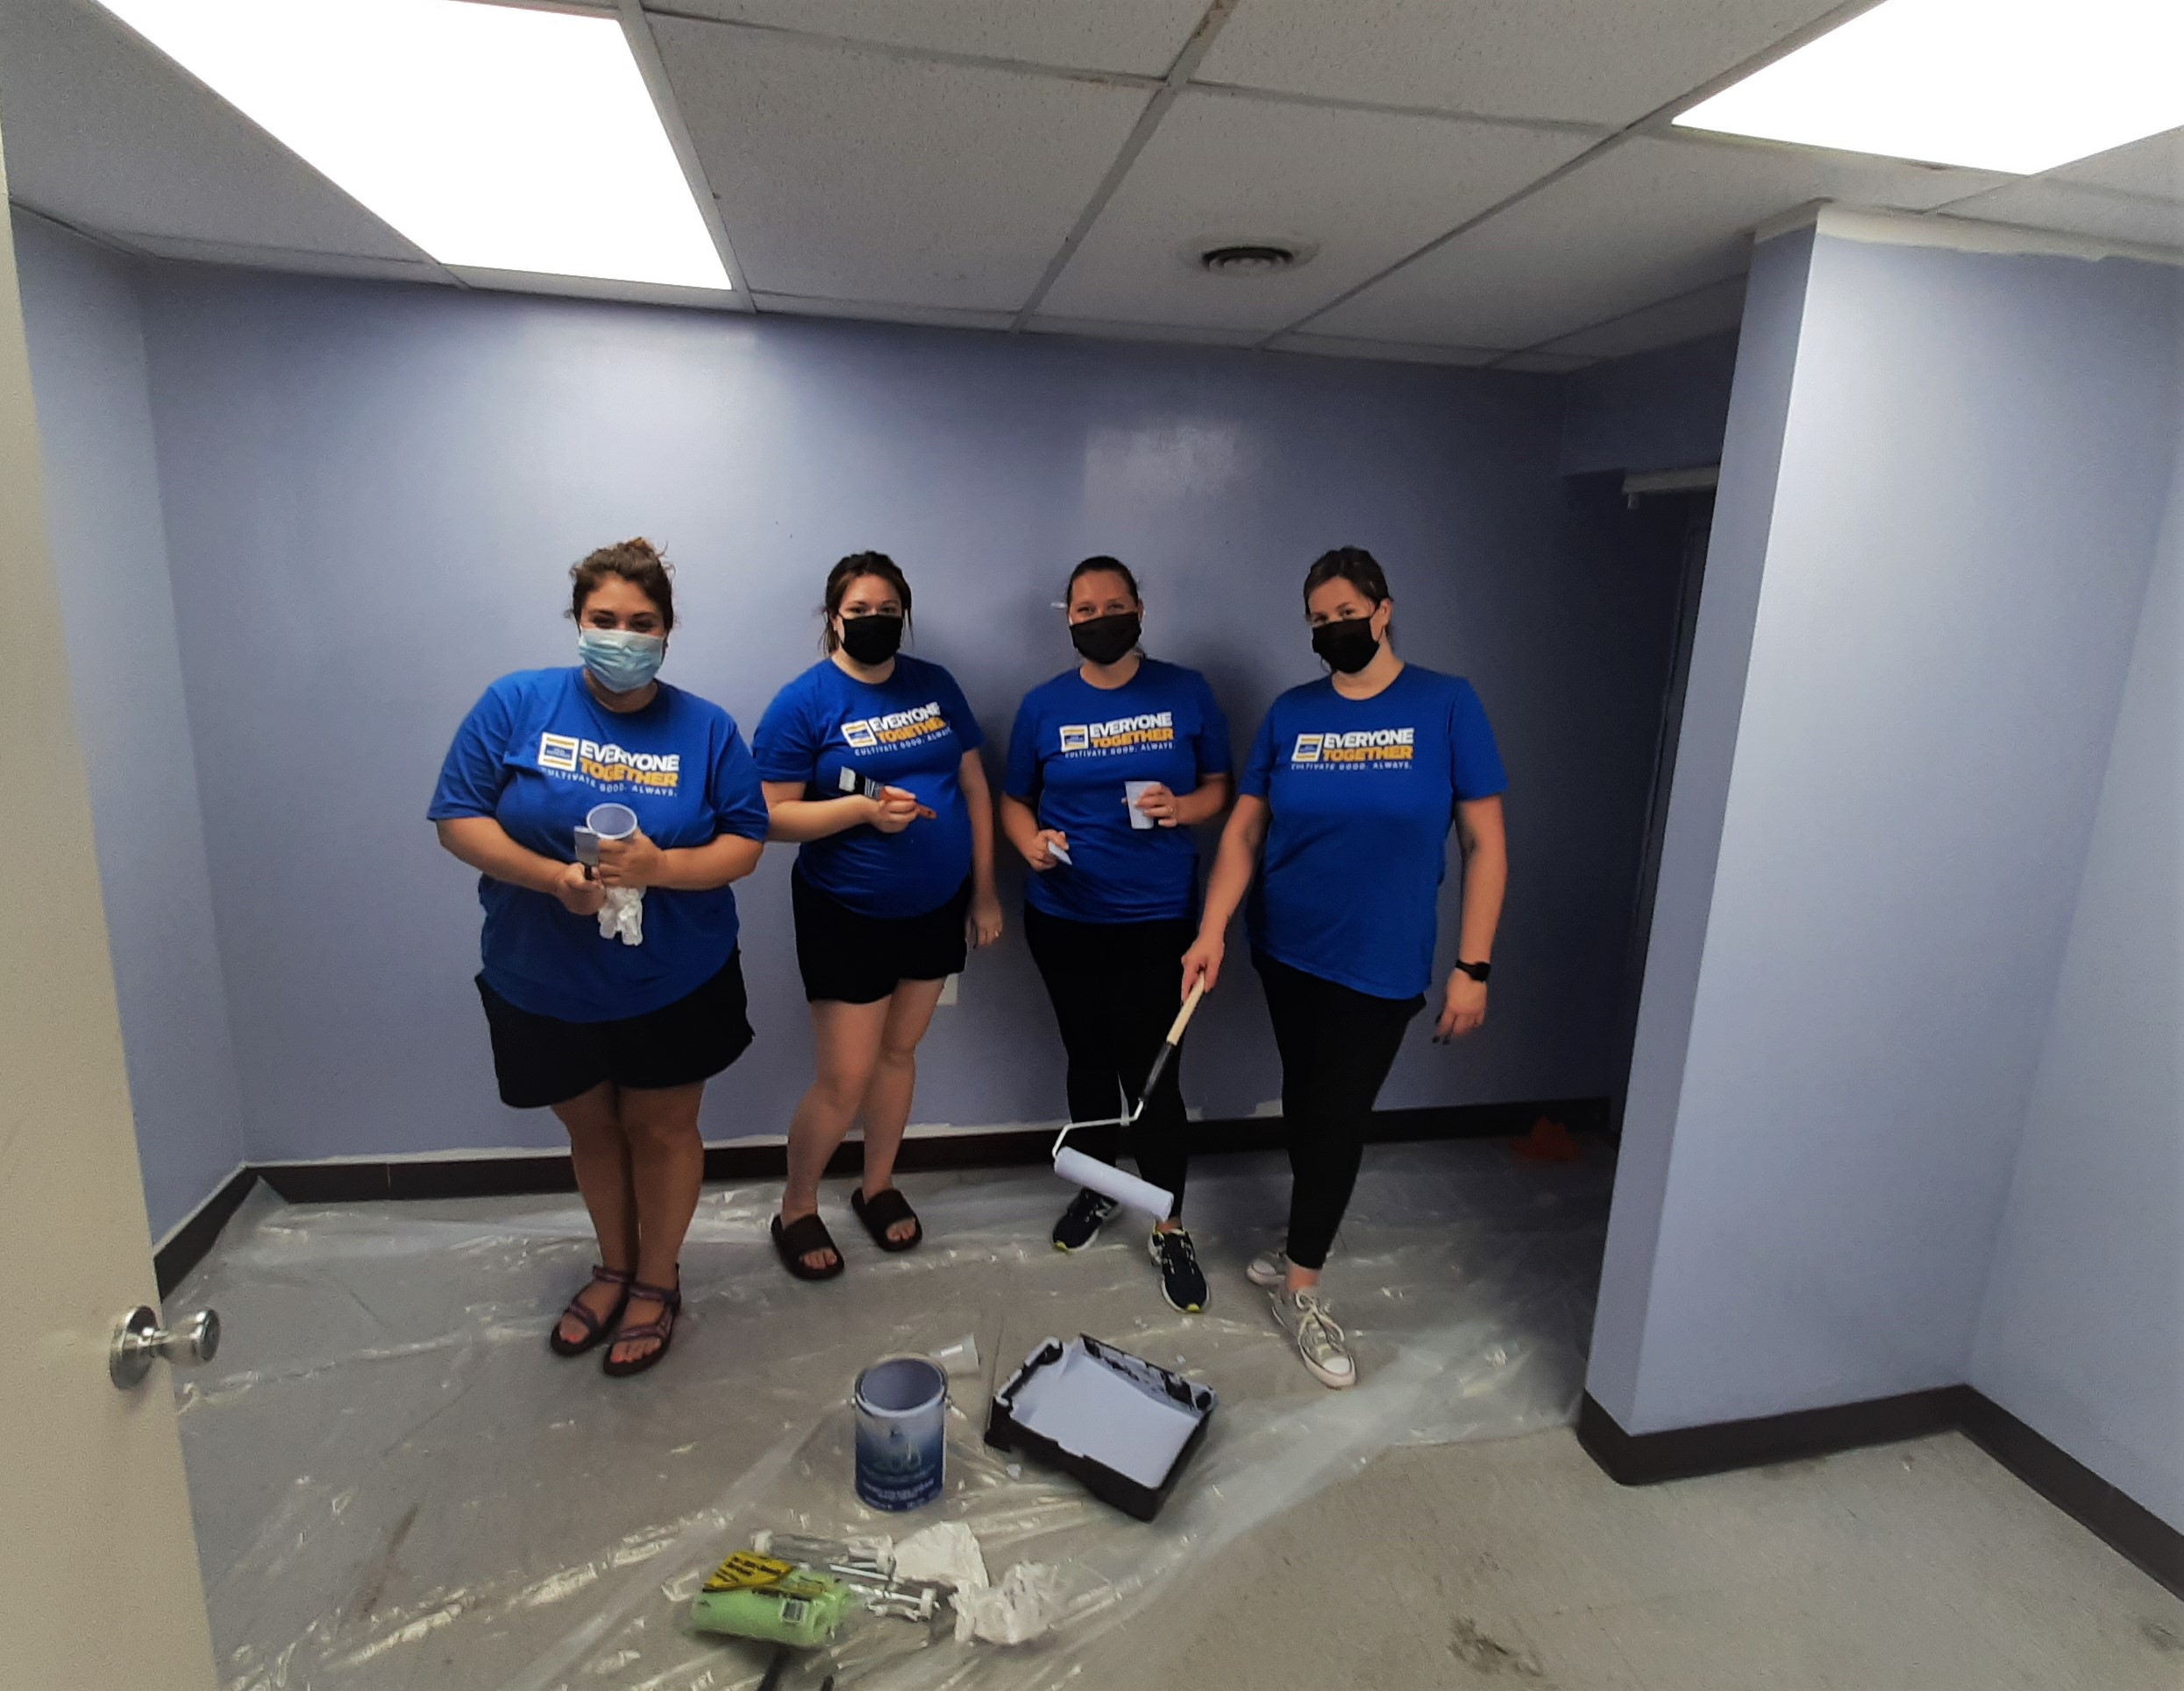 Four Old National Bank volunteers in blue shirts and paint rollers.